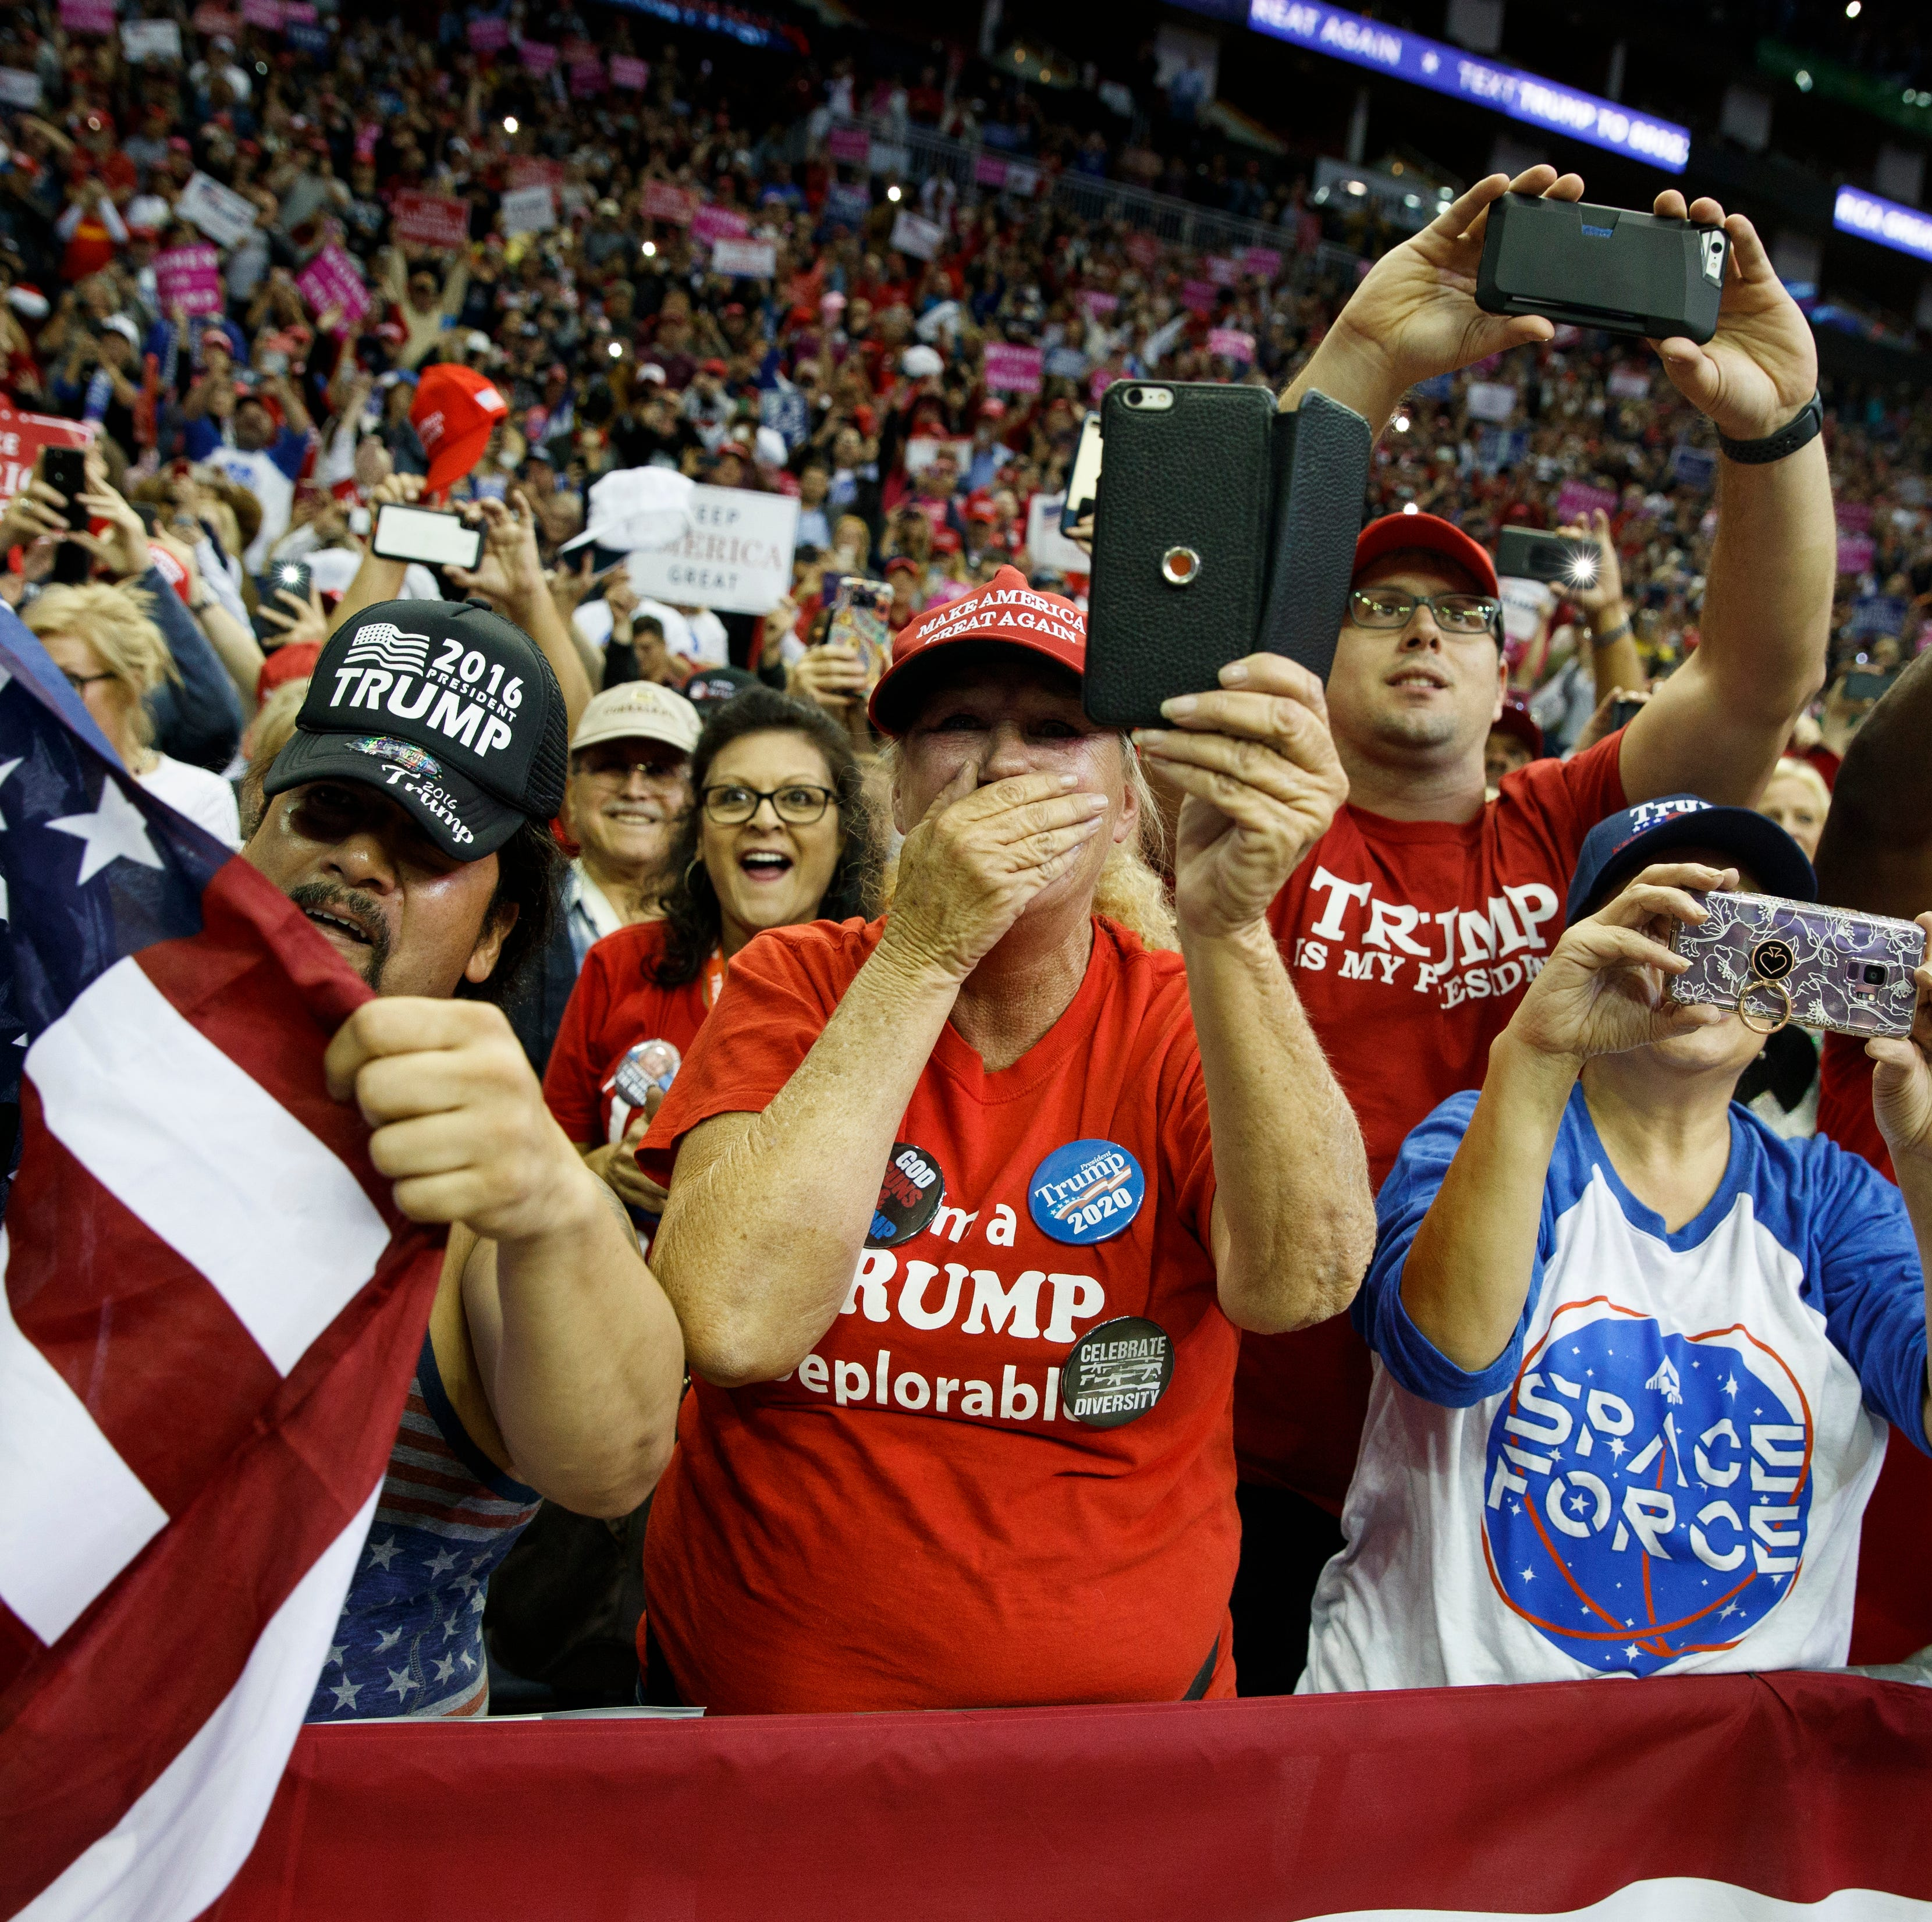 Meet some of the thousands of Texas supporters who came to Donald Trump's Ted Cruz rally